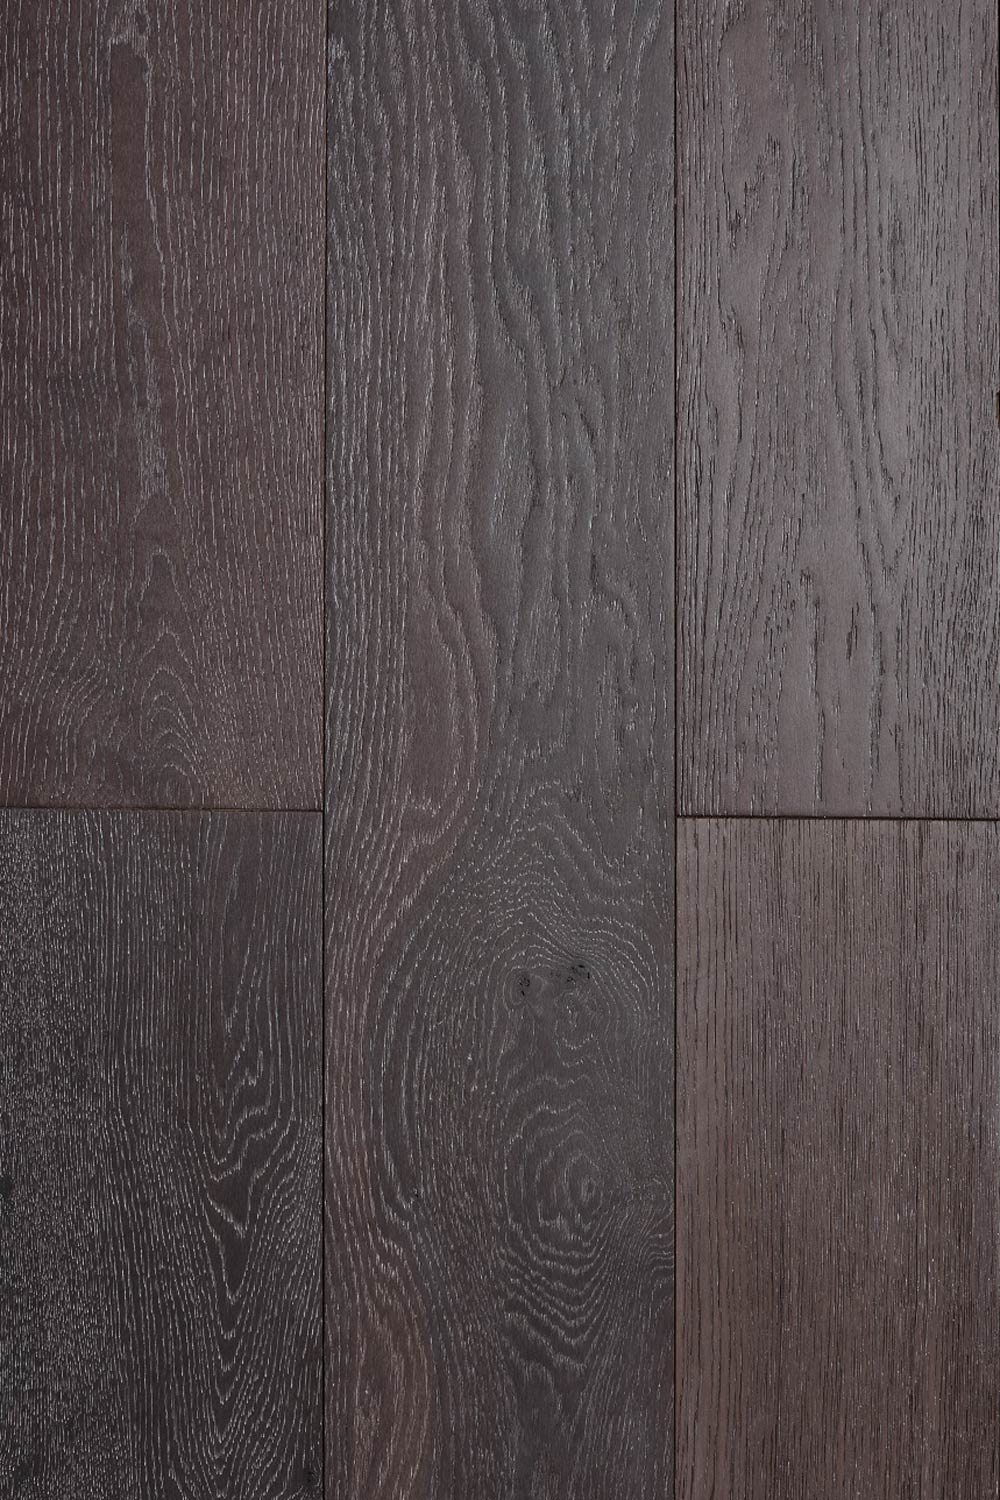 UV Lacquer Black Forest 5/8 in. Thick x 7 in. Wide x Varying Length Floating Engineered European Oak Hardwood Flooring (21.63 sq. ft. / box) - 810001960056